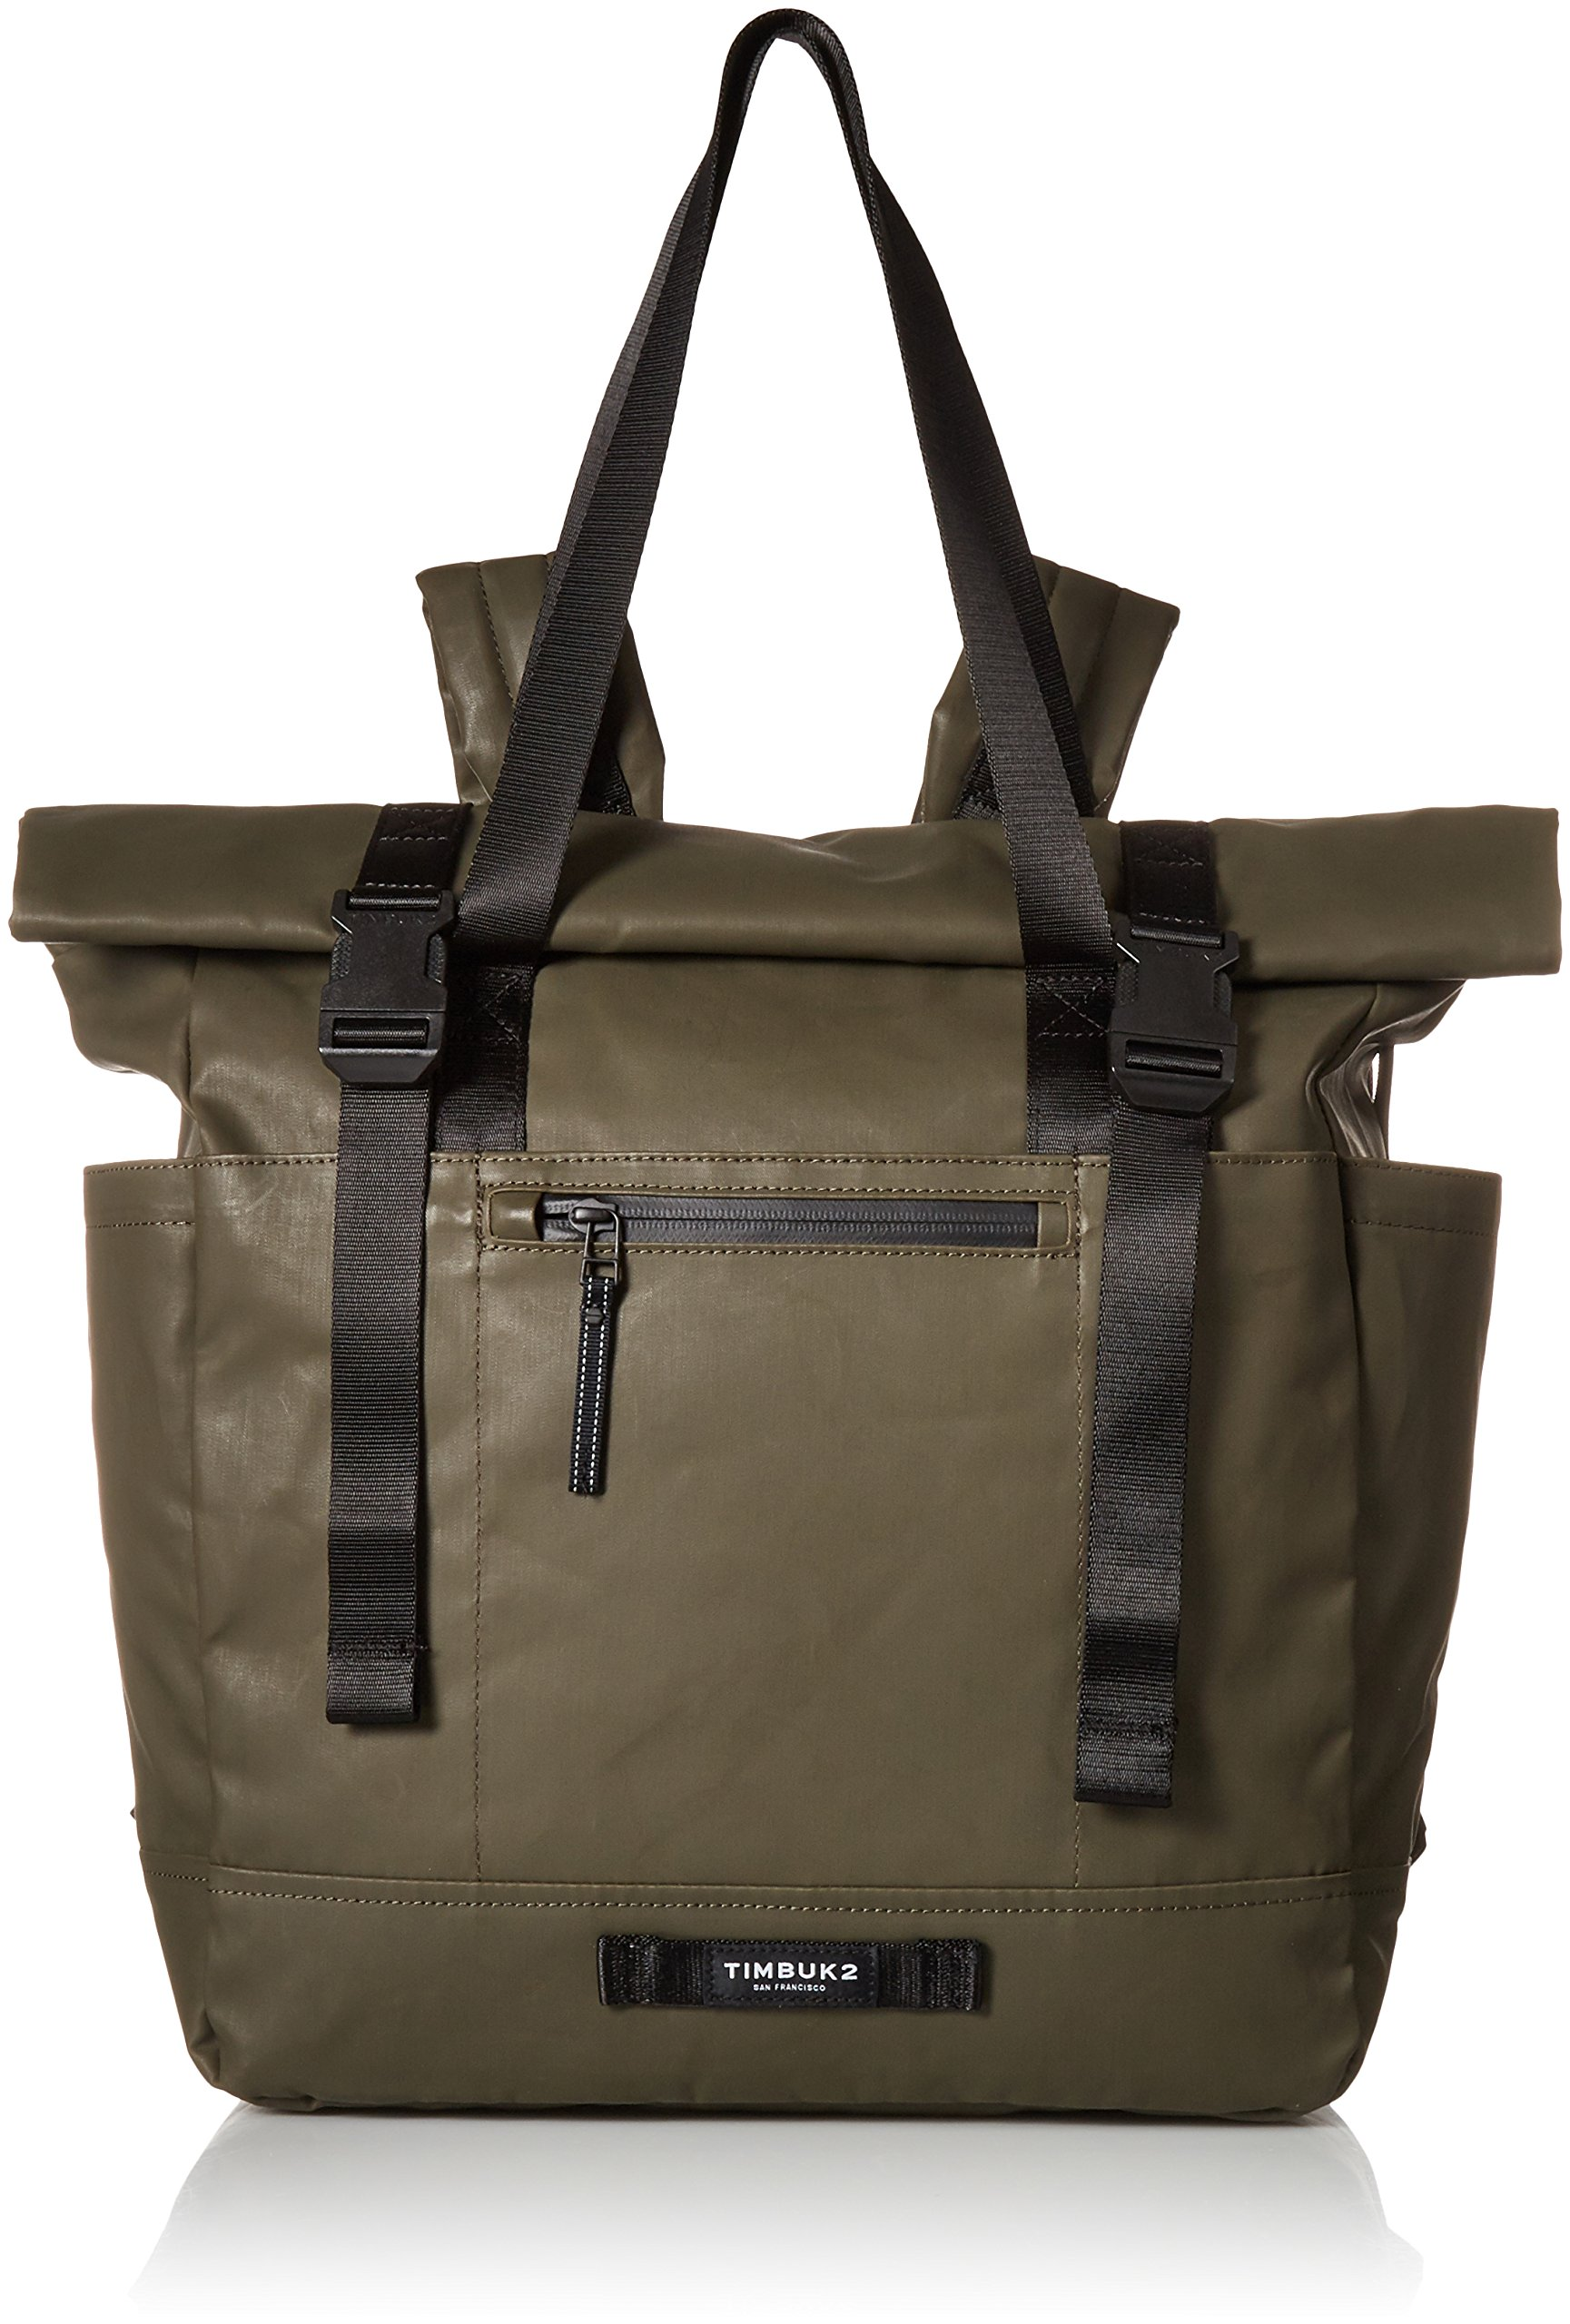 Timbuk2 Forge Tote Twill, OS, Mud, One Size